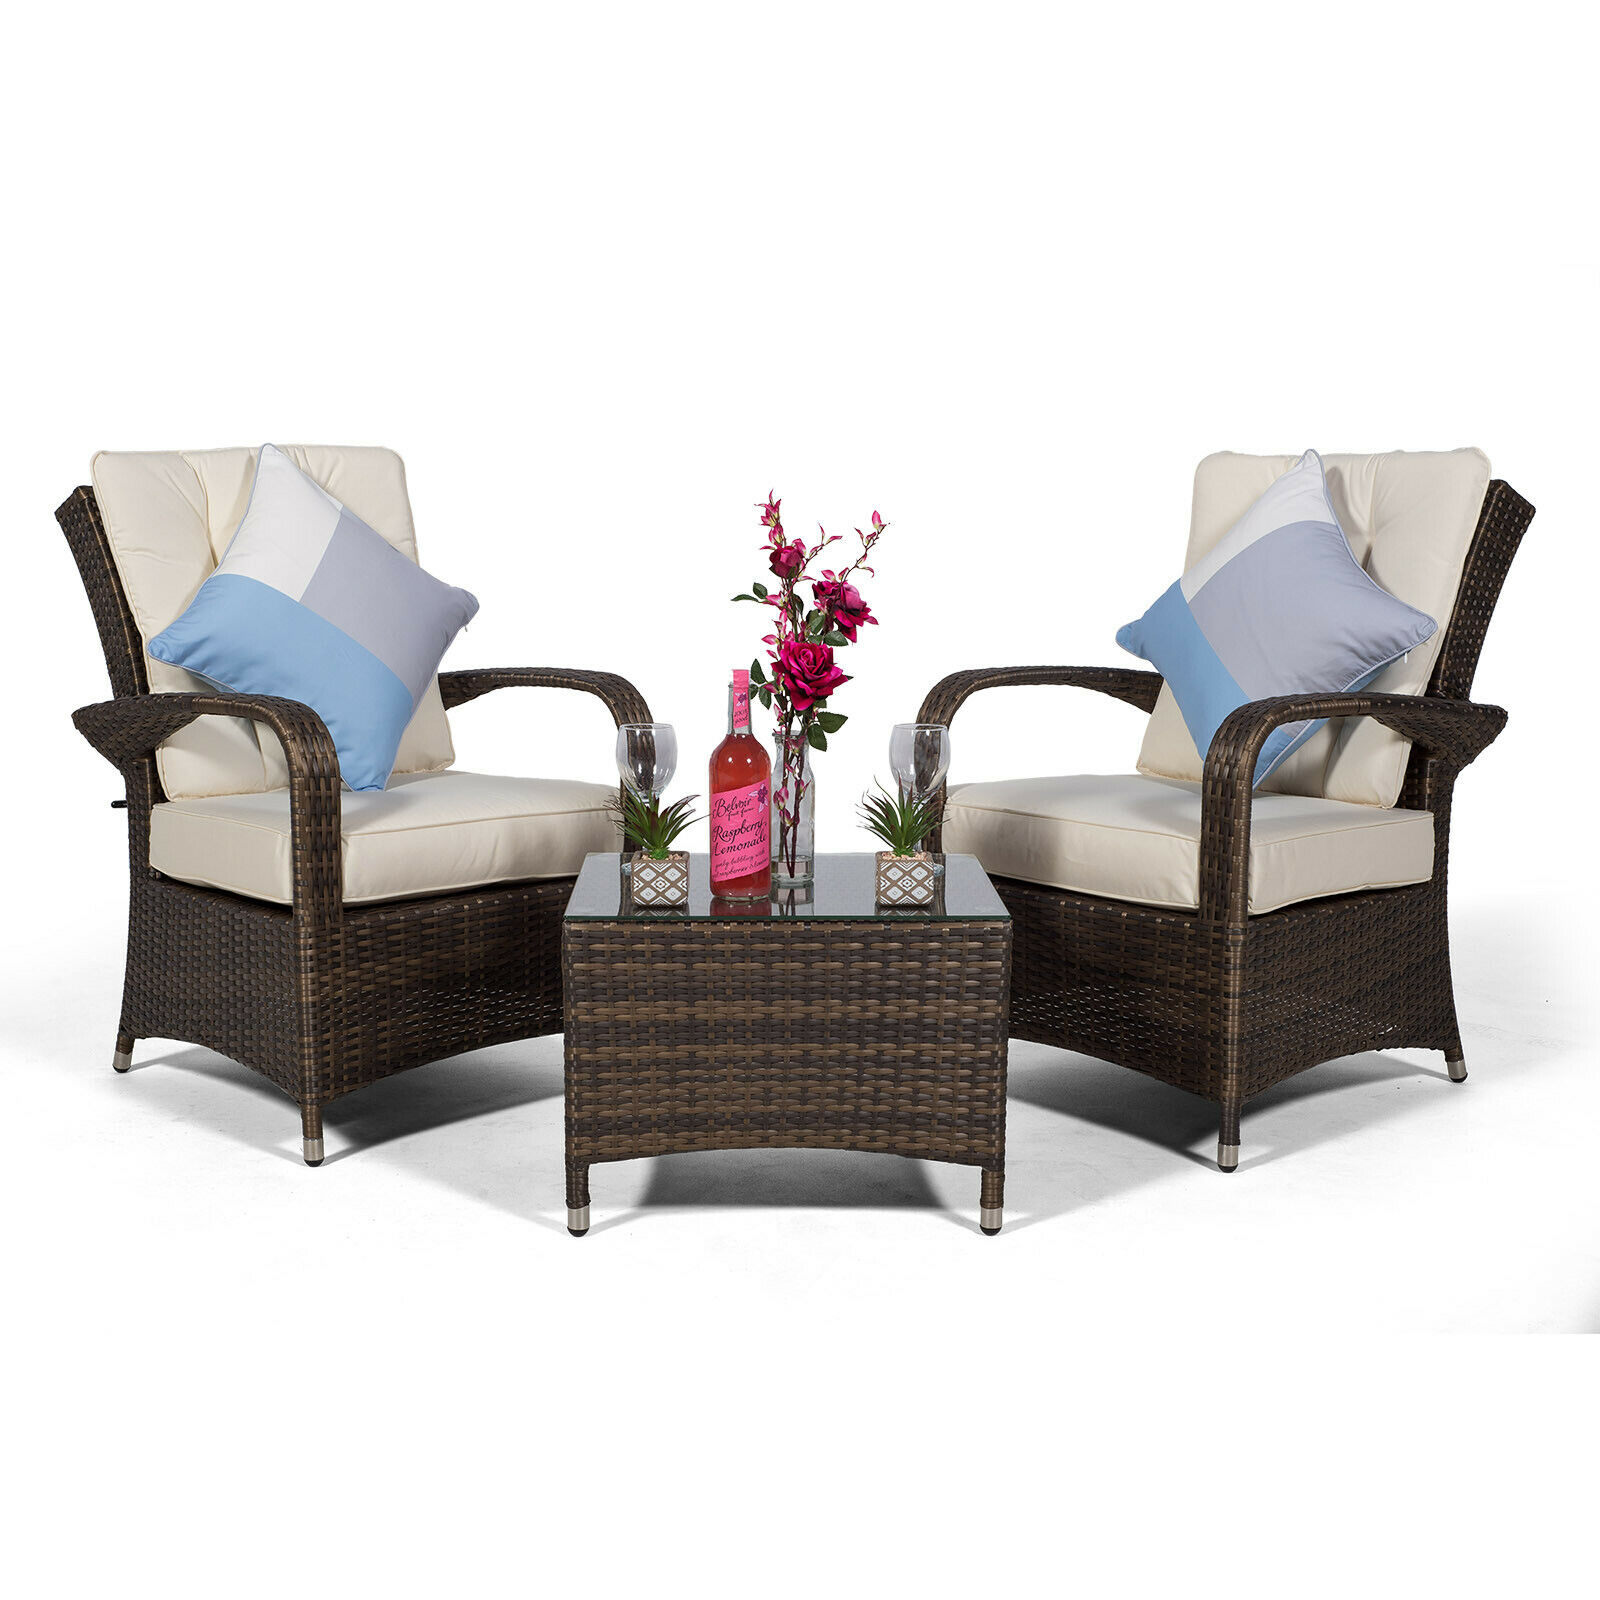 details about arizona 2 seat rattan lounge chair table patio garden furniture set w cover